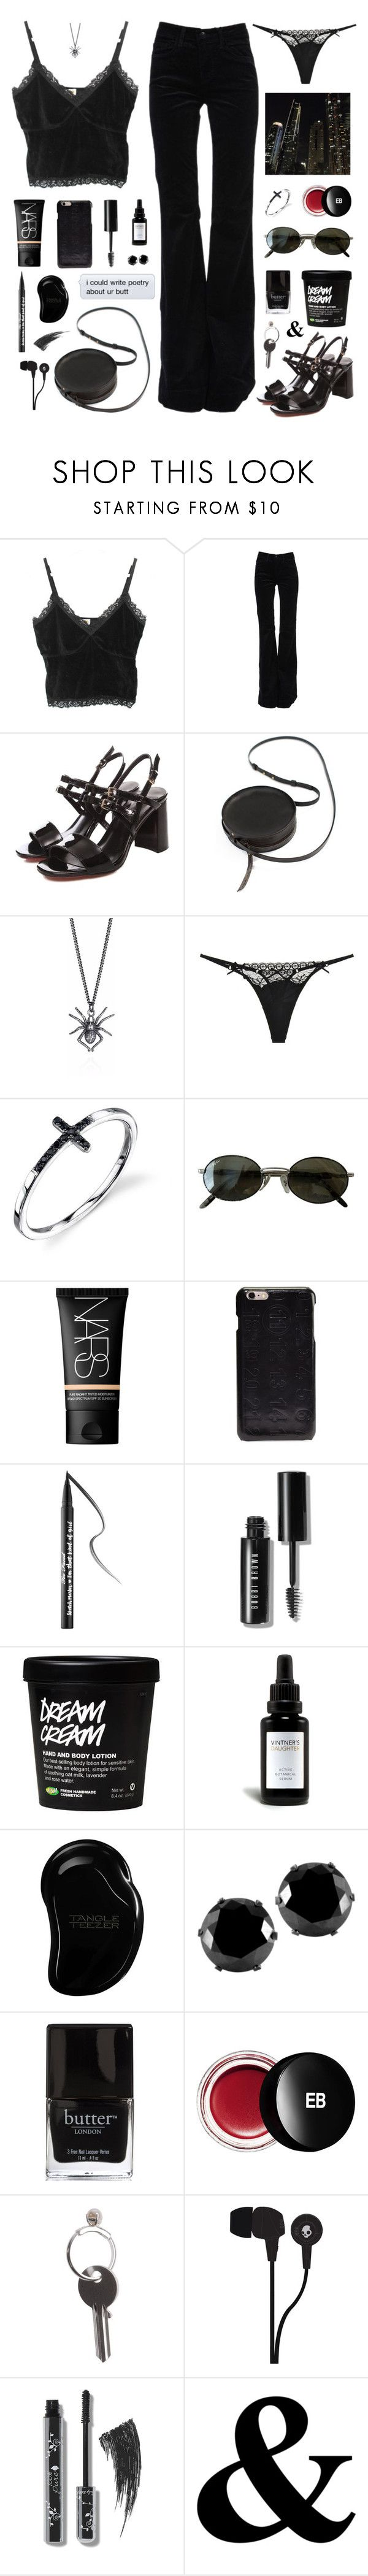 """""""fallen on me"""" by ampersand ❤ liked on Polyvore featuring J Brand, Sara Barner, Cotton Club, Ray-Ban, Maison Margiela, Too Faced Cosmetics, Bobbi Brown Cosmetics, Vintner's Daughter, Tangle Teezer and West Coast Jewelry"""